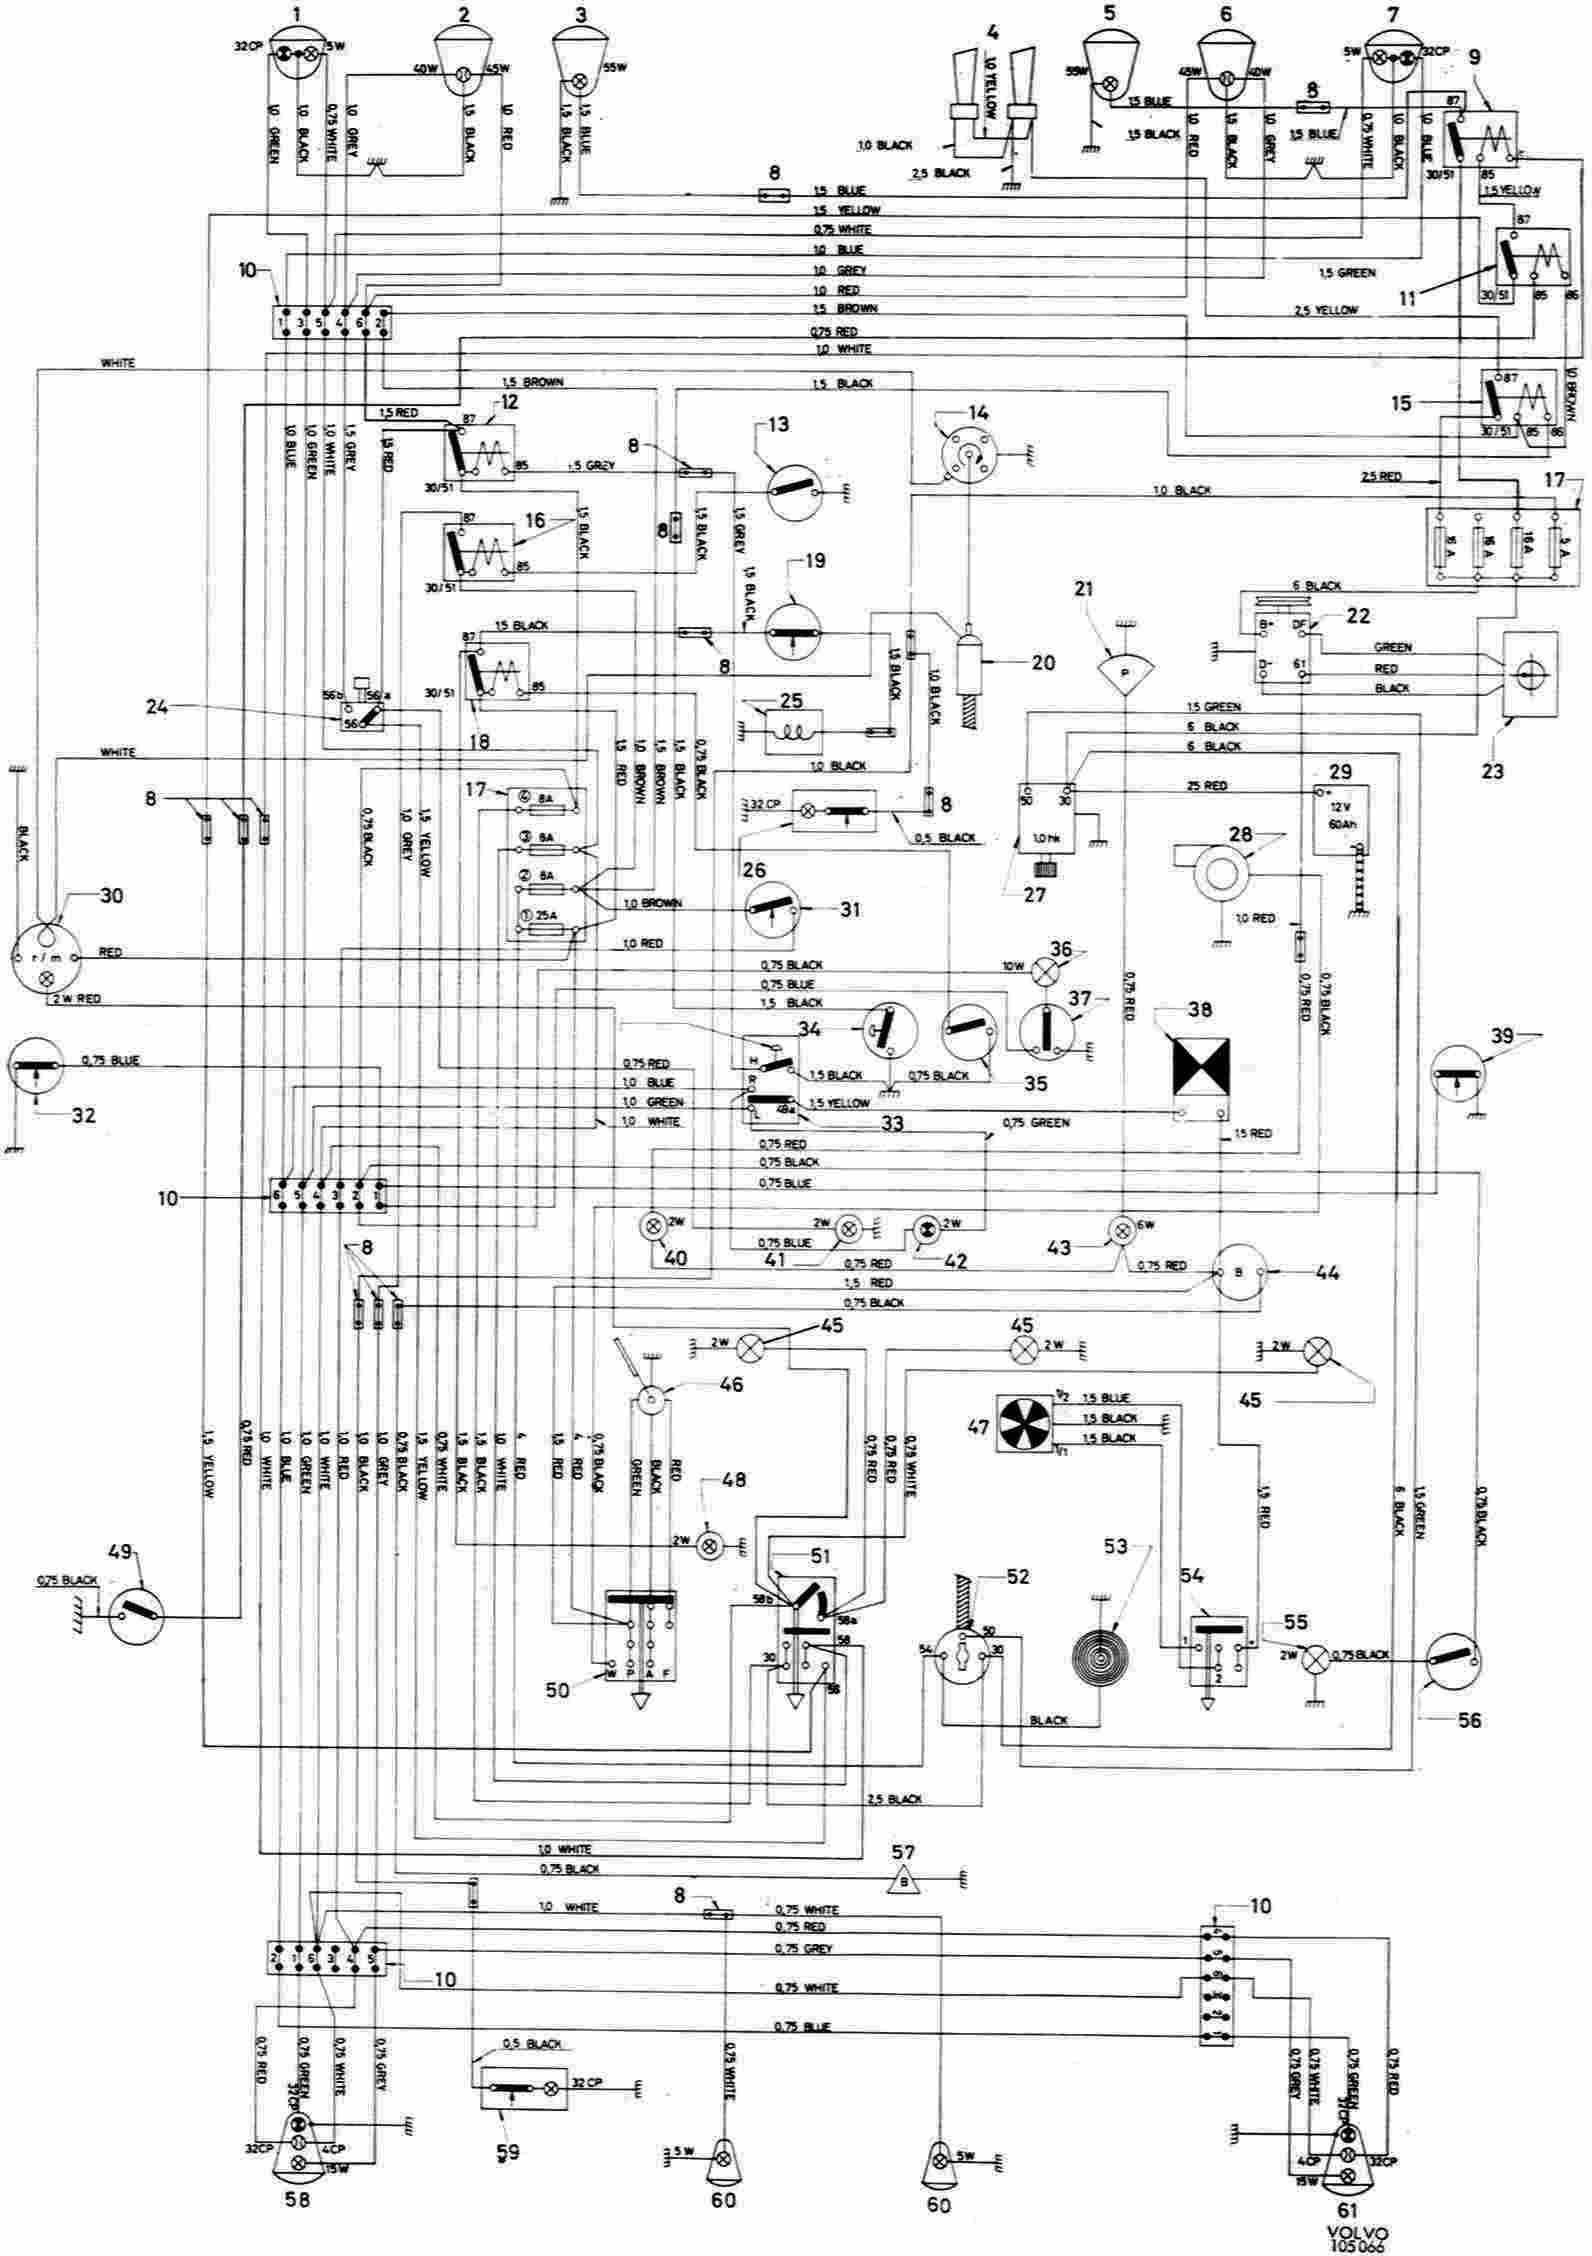 wiring diagram for dixie air horns how do you draw a bohr rutherford volvo truck horn